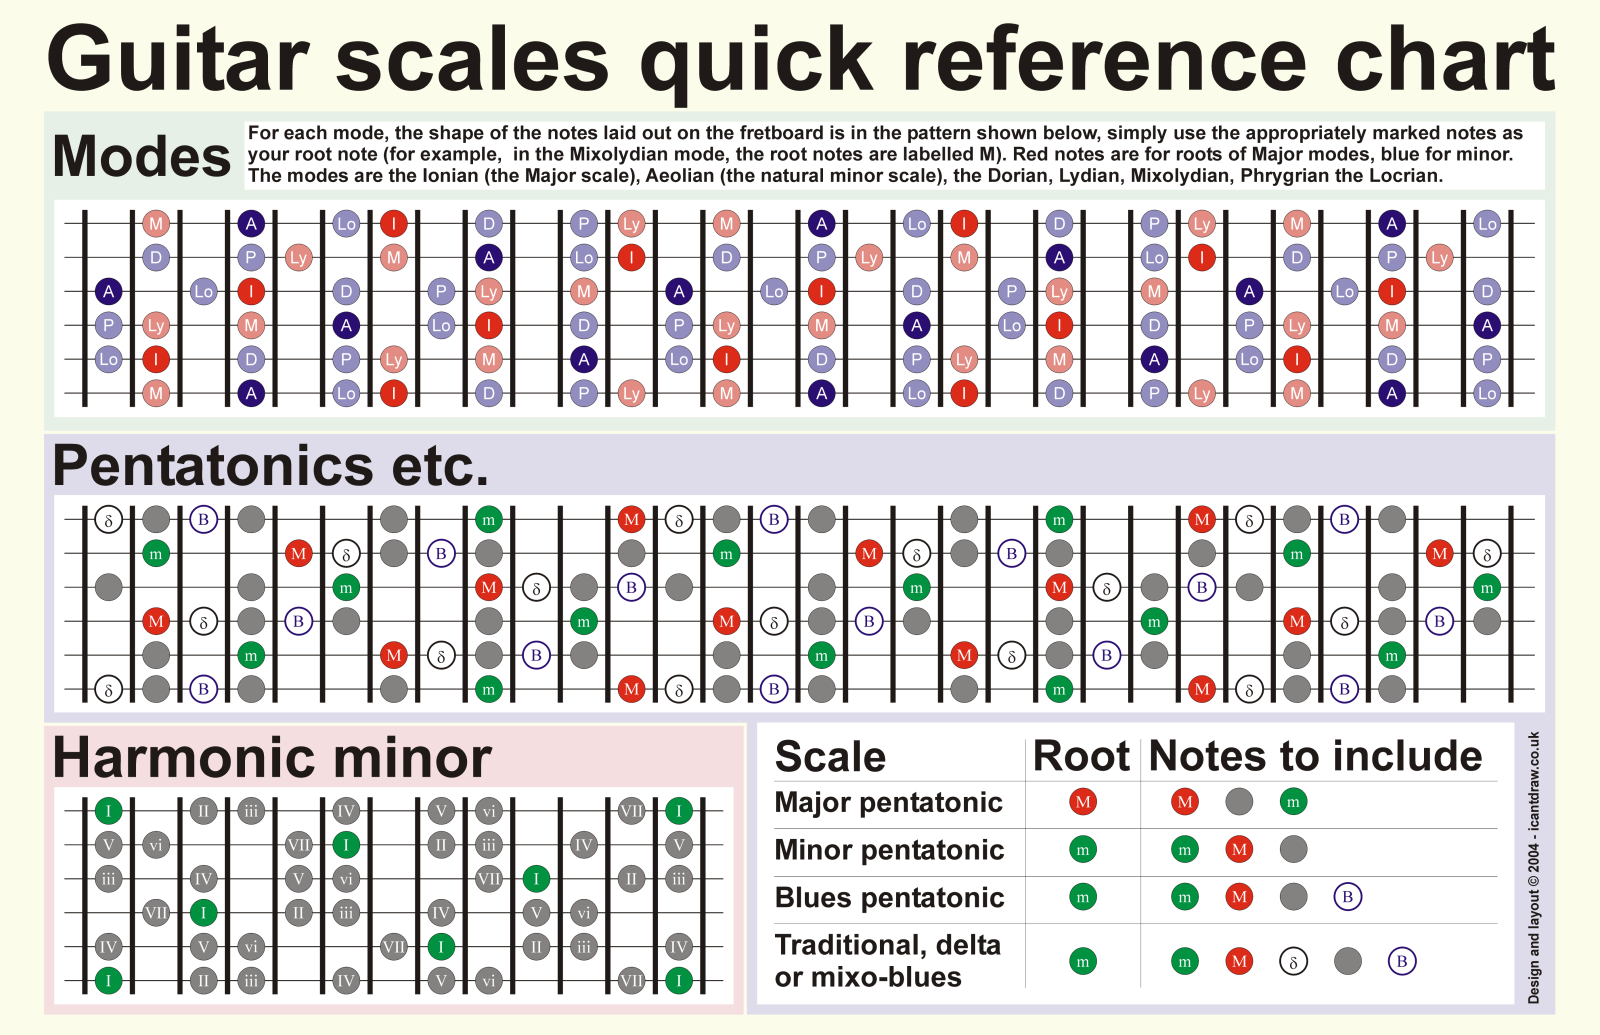 A Quick Guide To Mastering The Six Most Commonly Used Guitar Scales